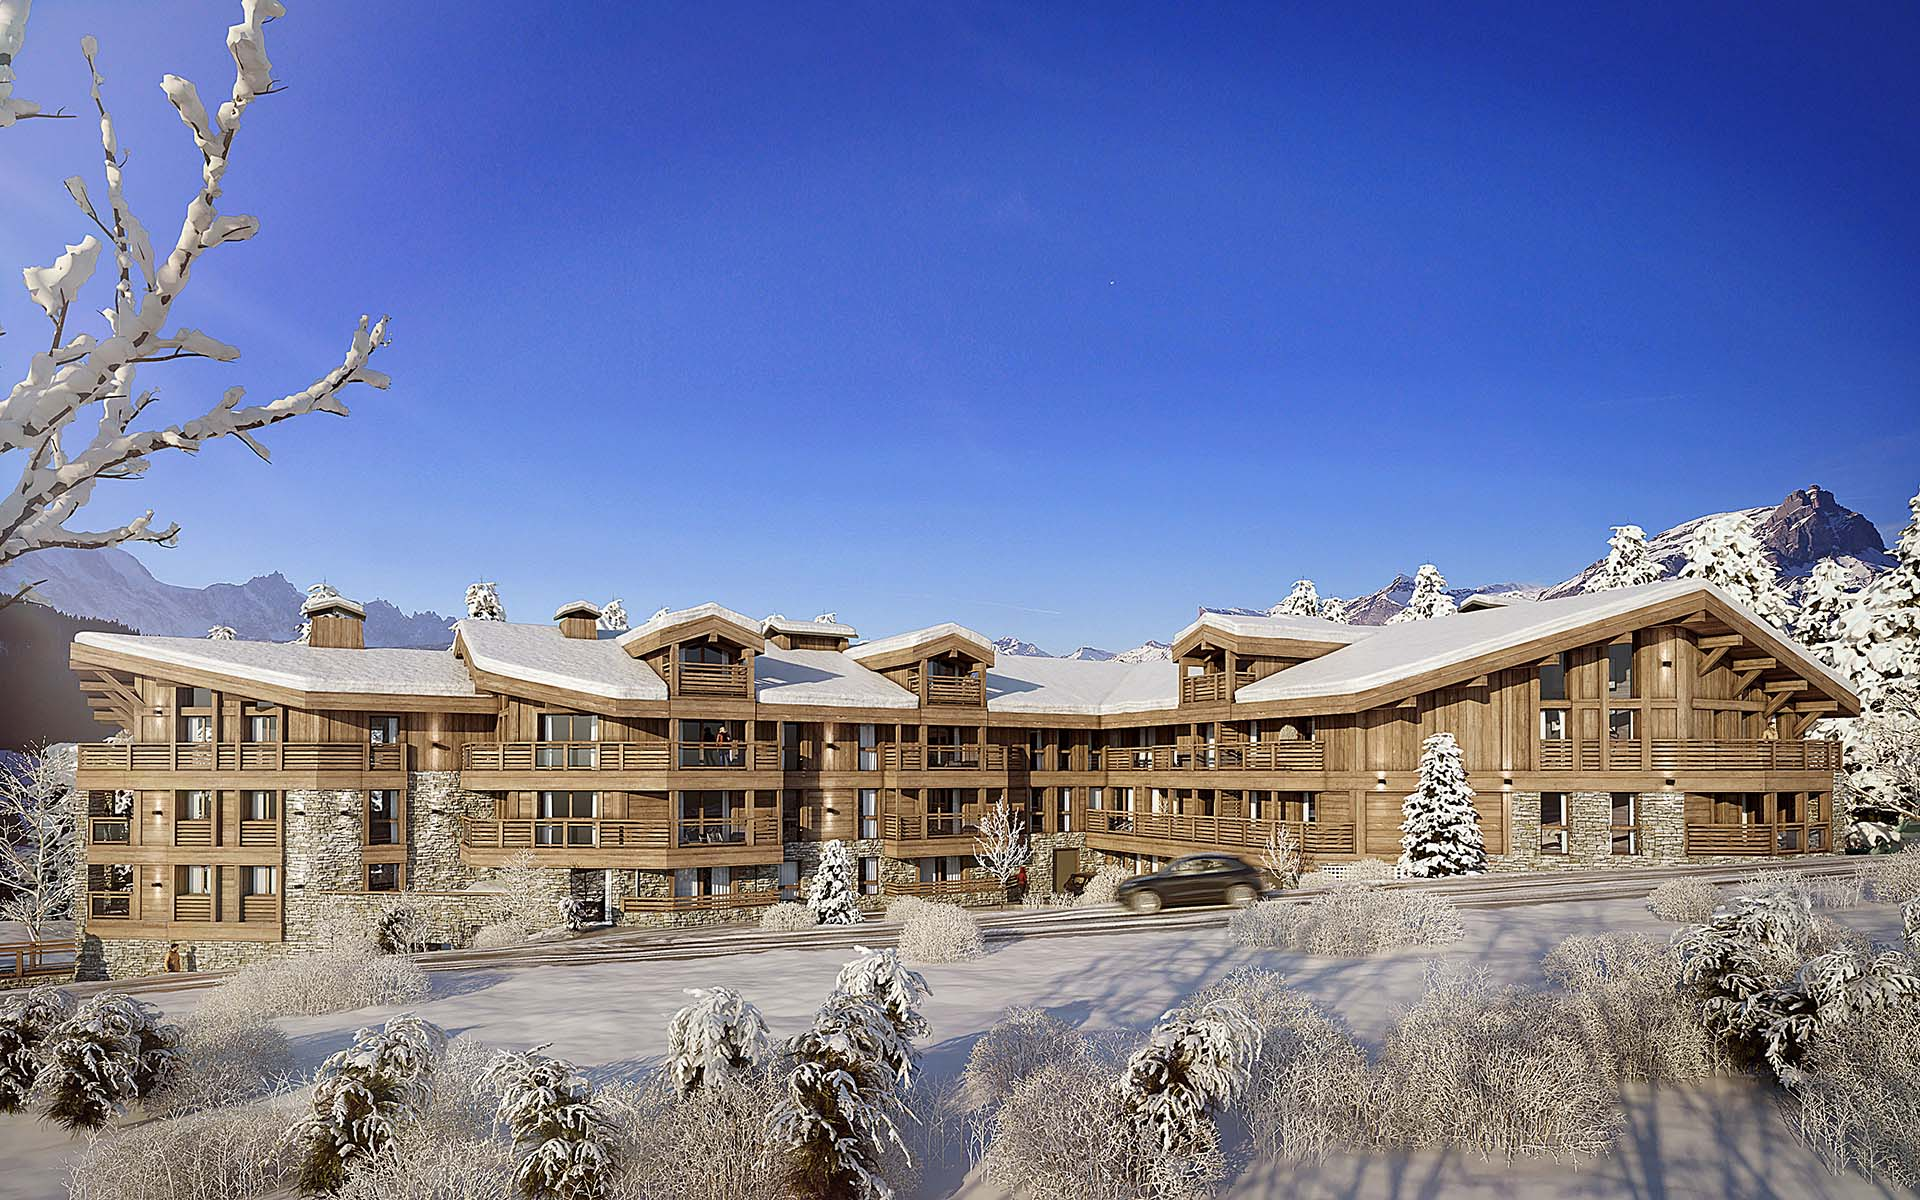 3D Perspective of a real estate project of a luxurious chalet for a private individual.